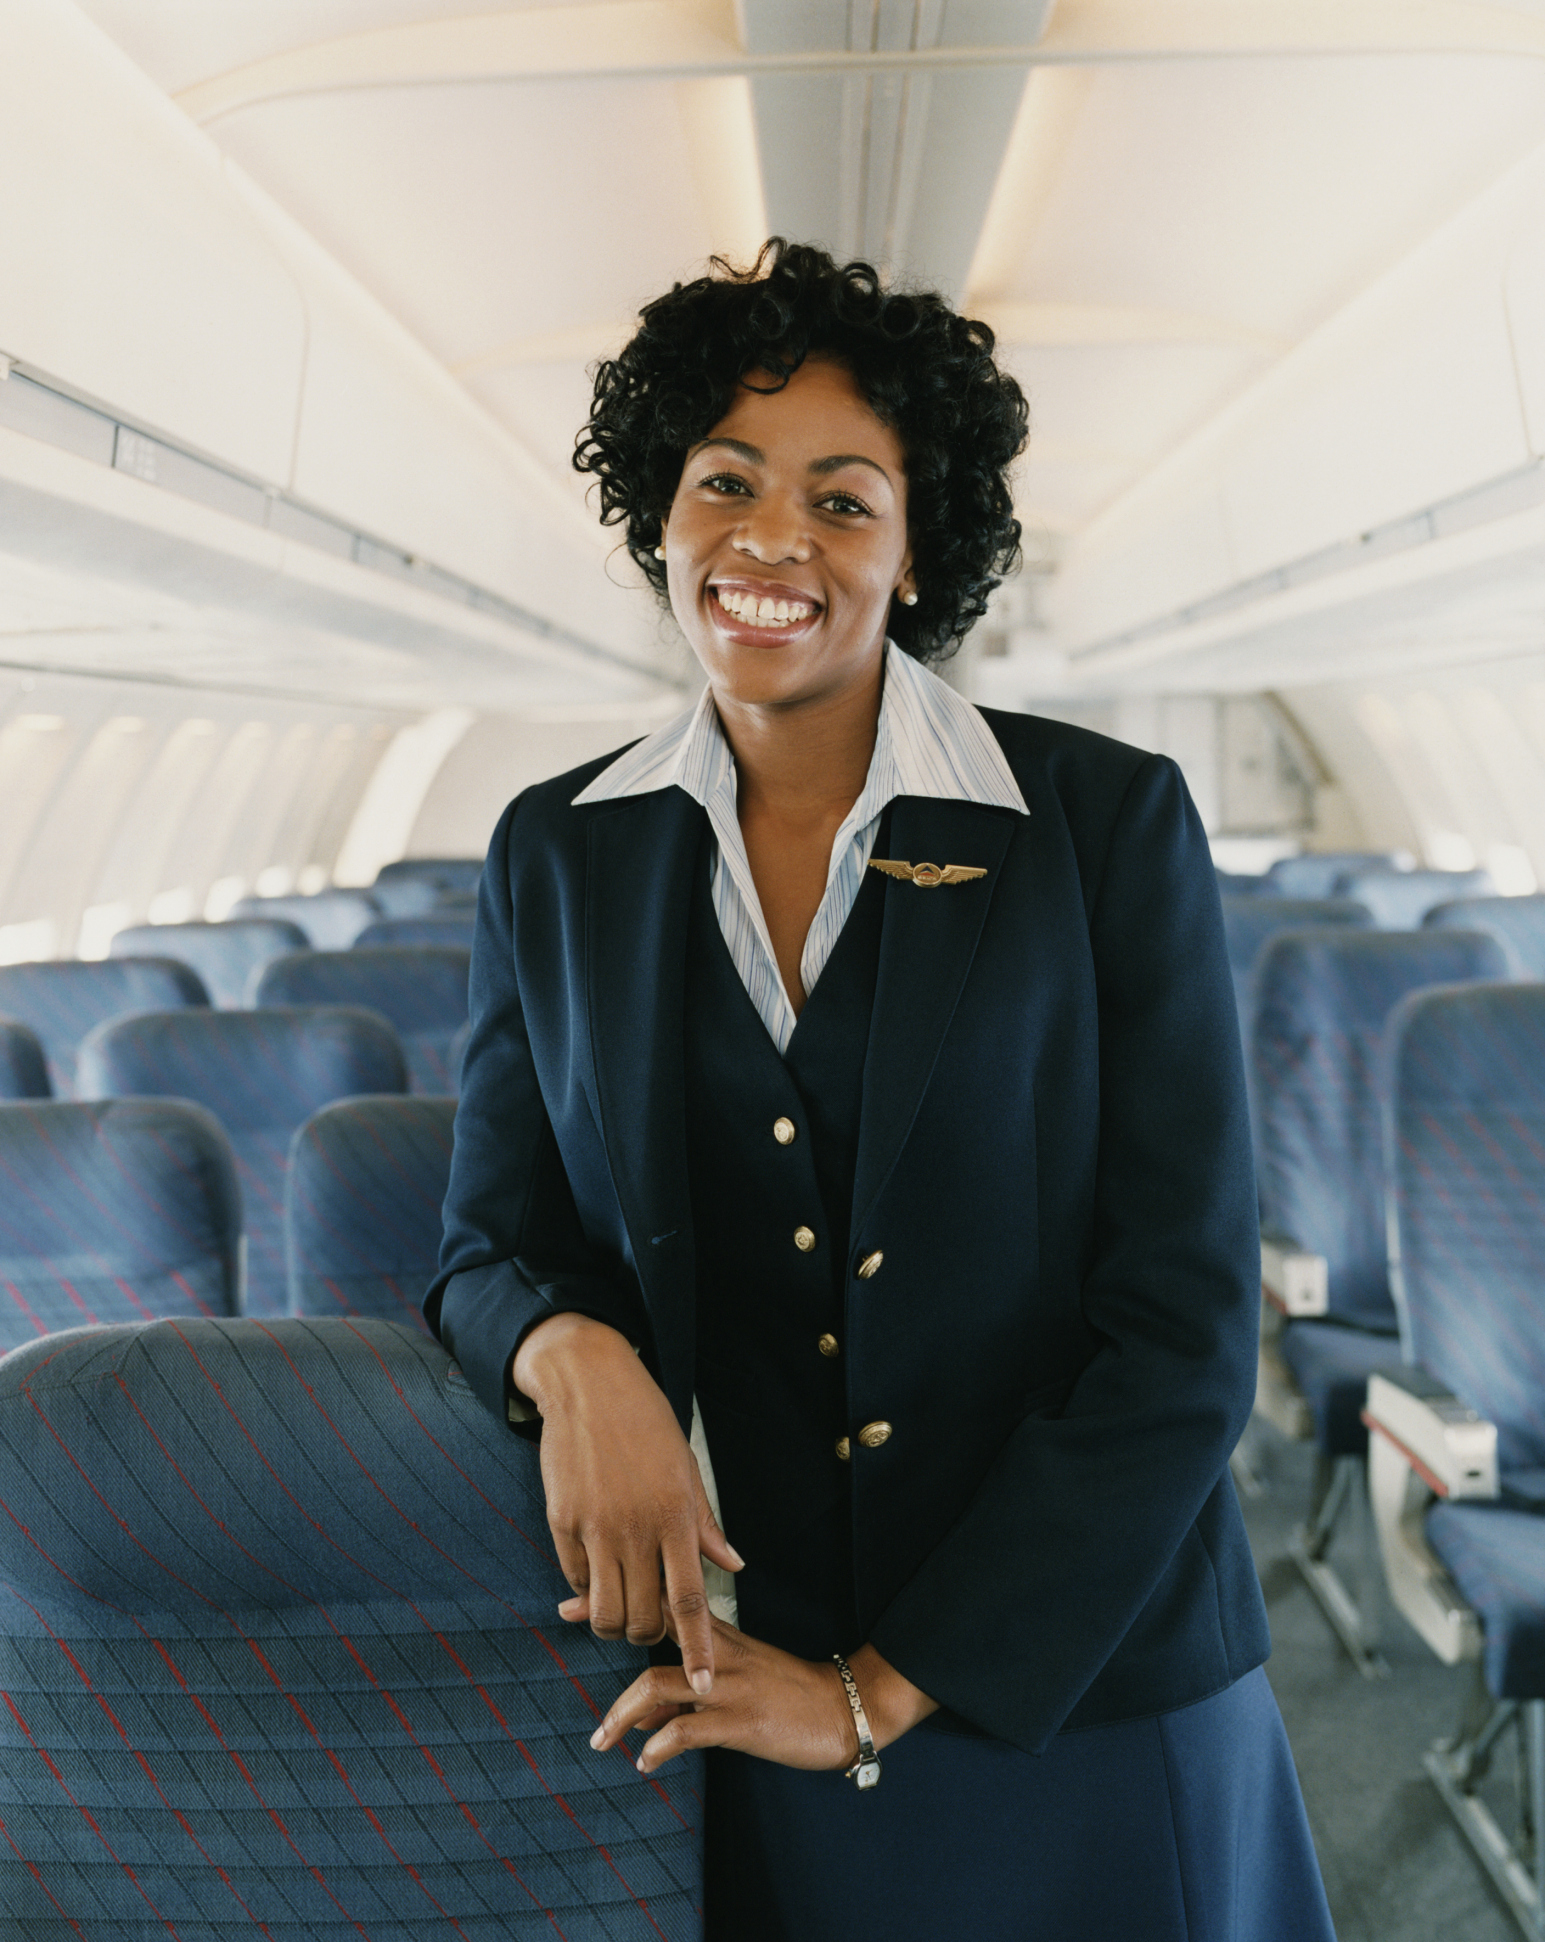 How To Lose Weight Fast With The Stewardess Diet